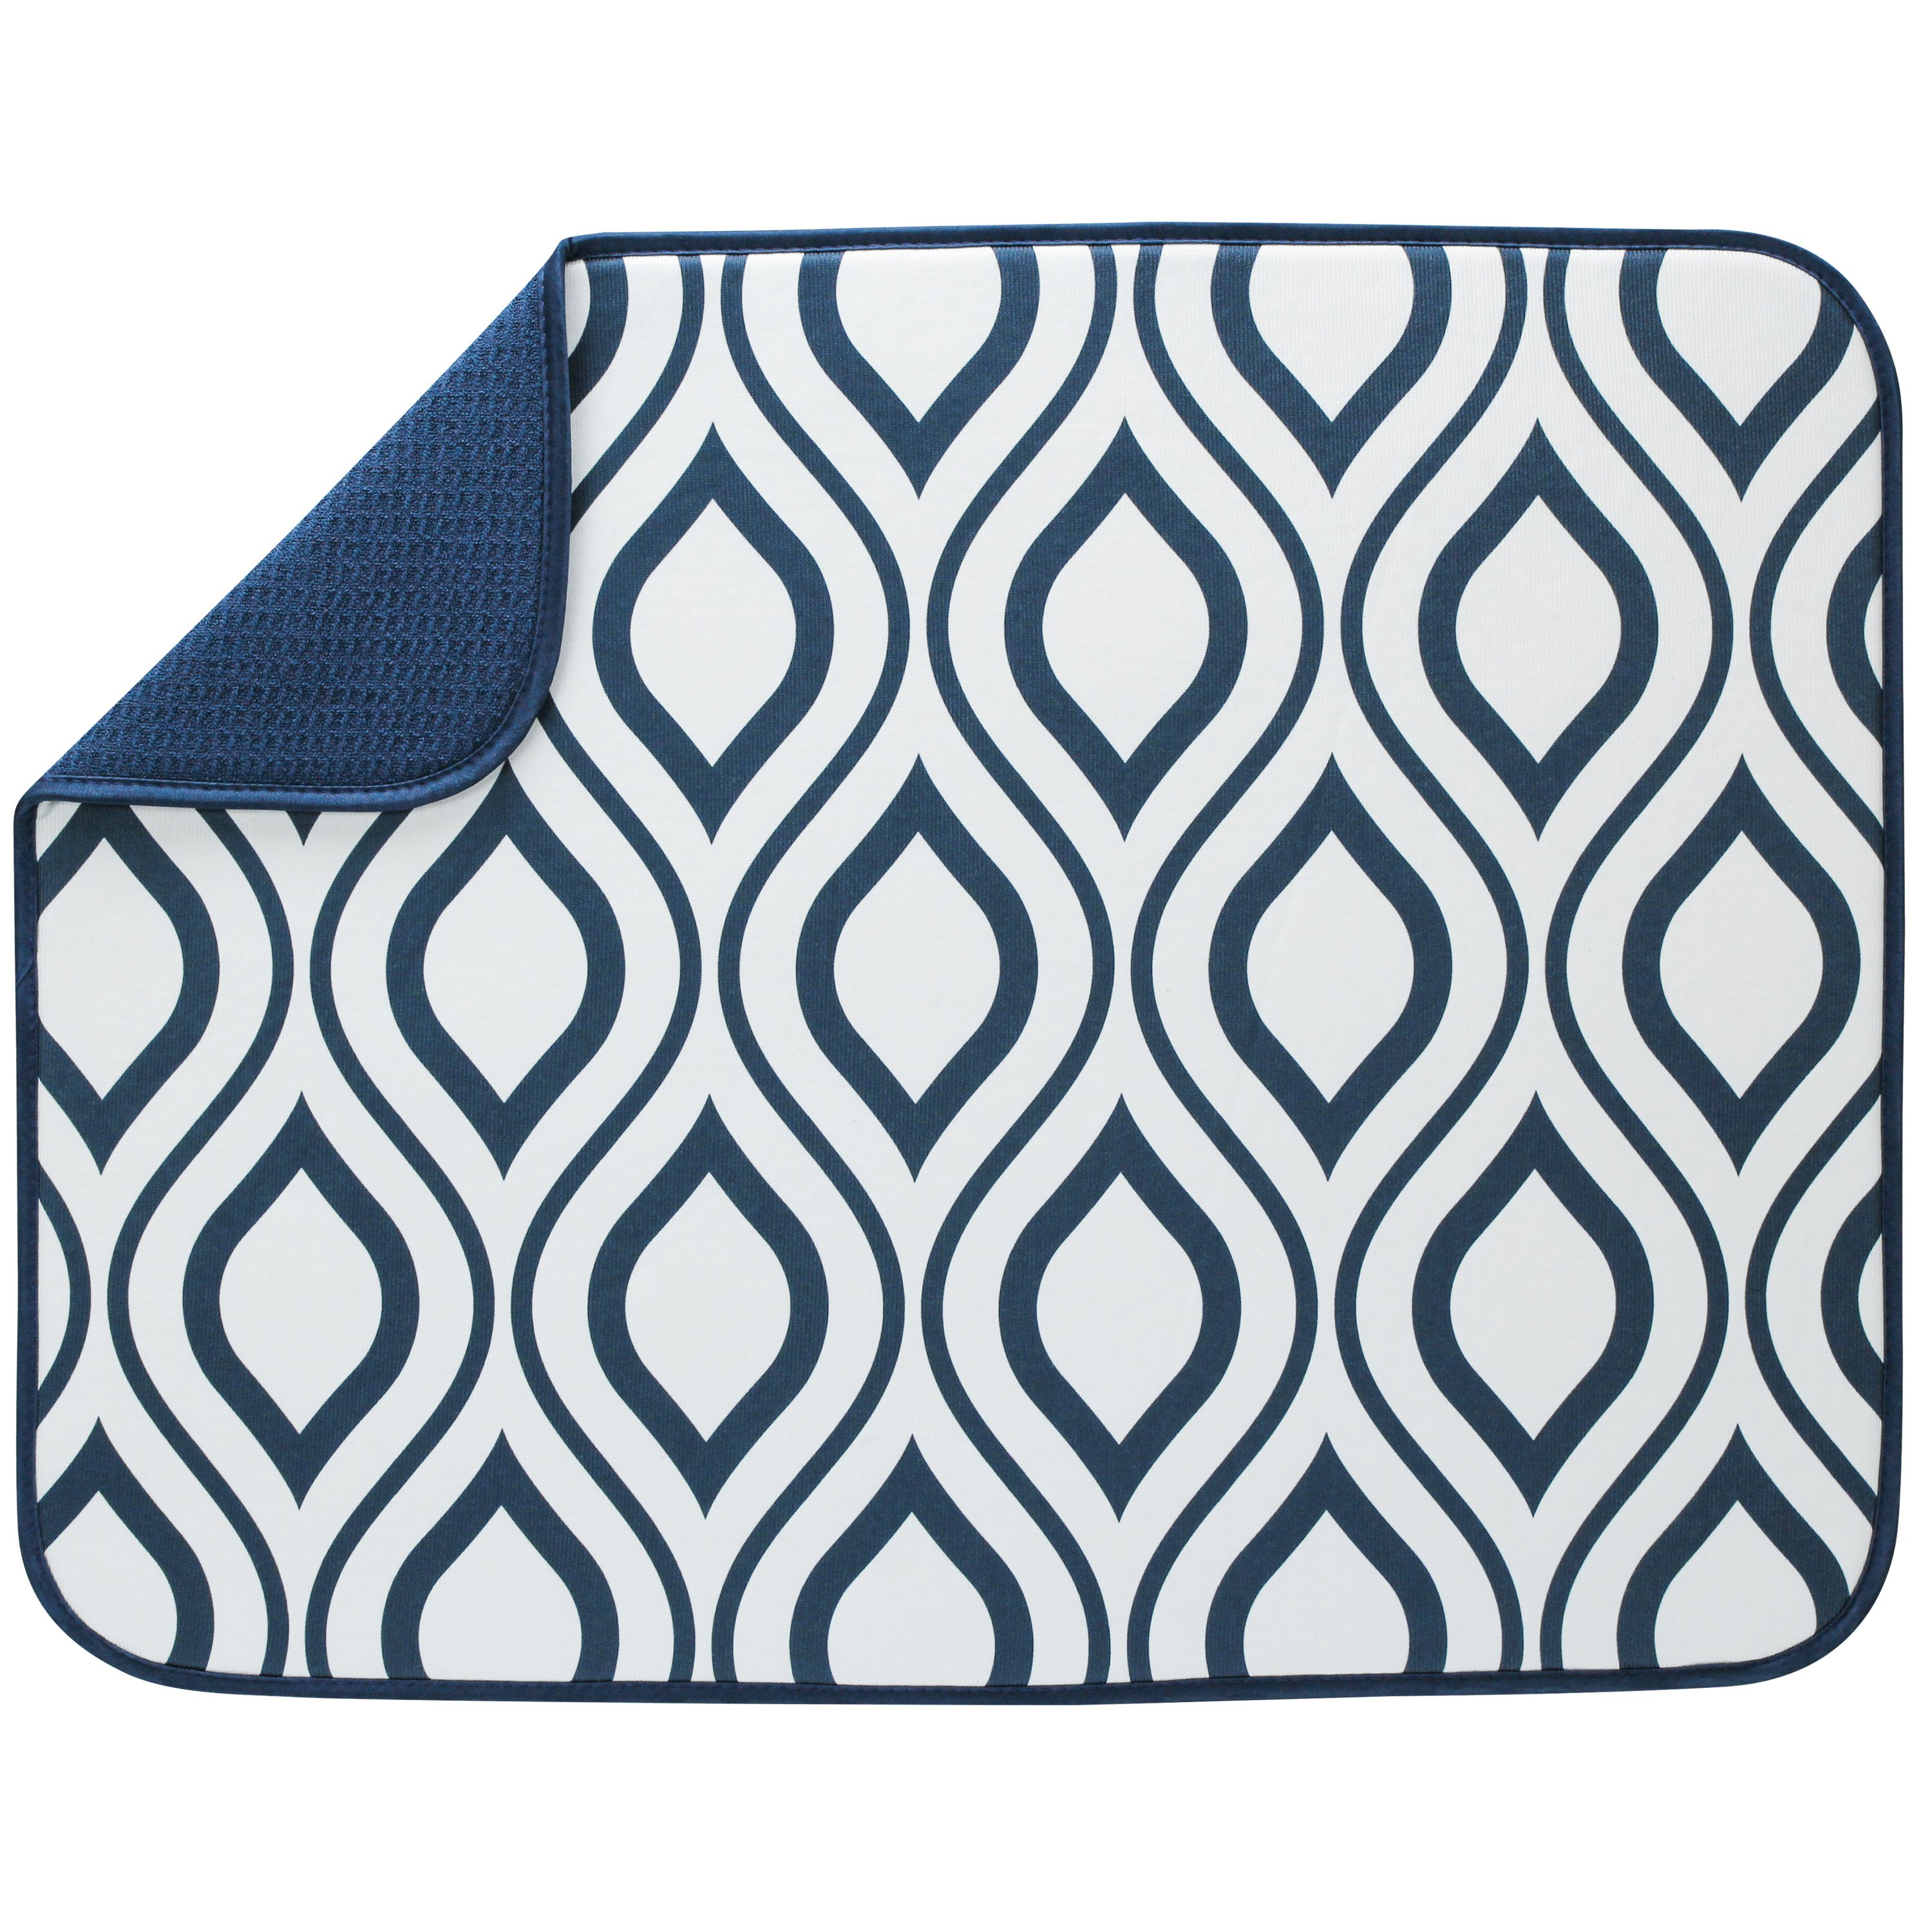 XL Reversible Microfiber Dish Drying Mat - White with Navy Double Trellis - 18  x 24